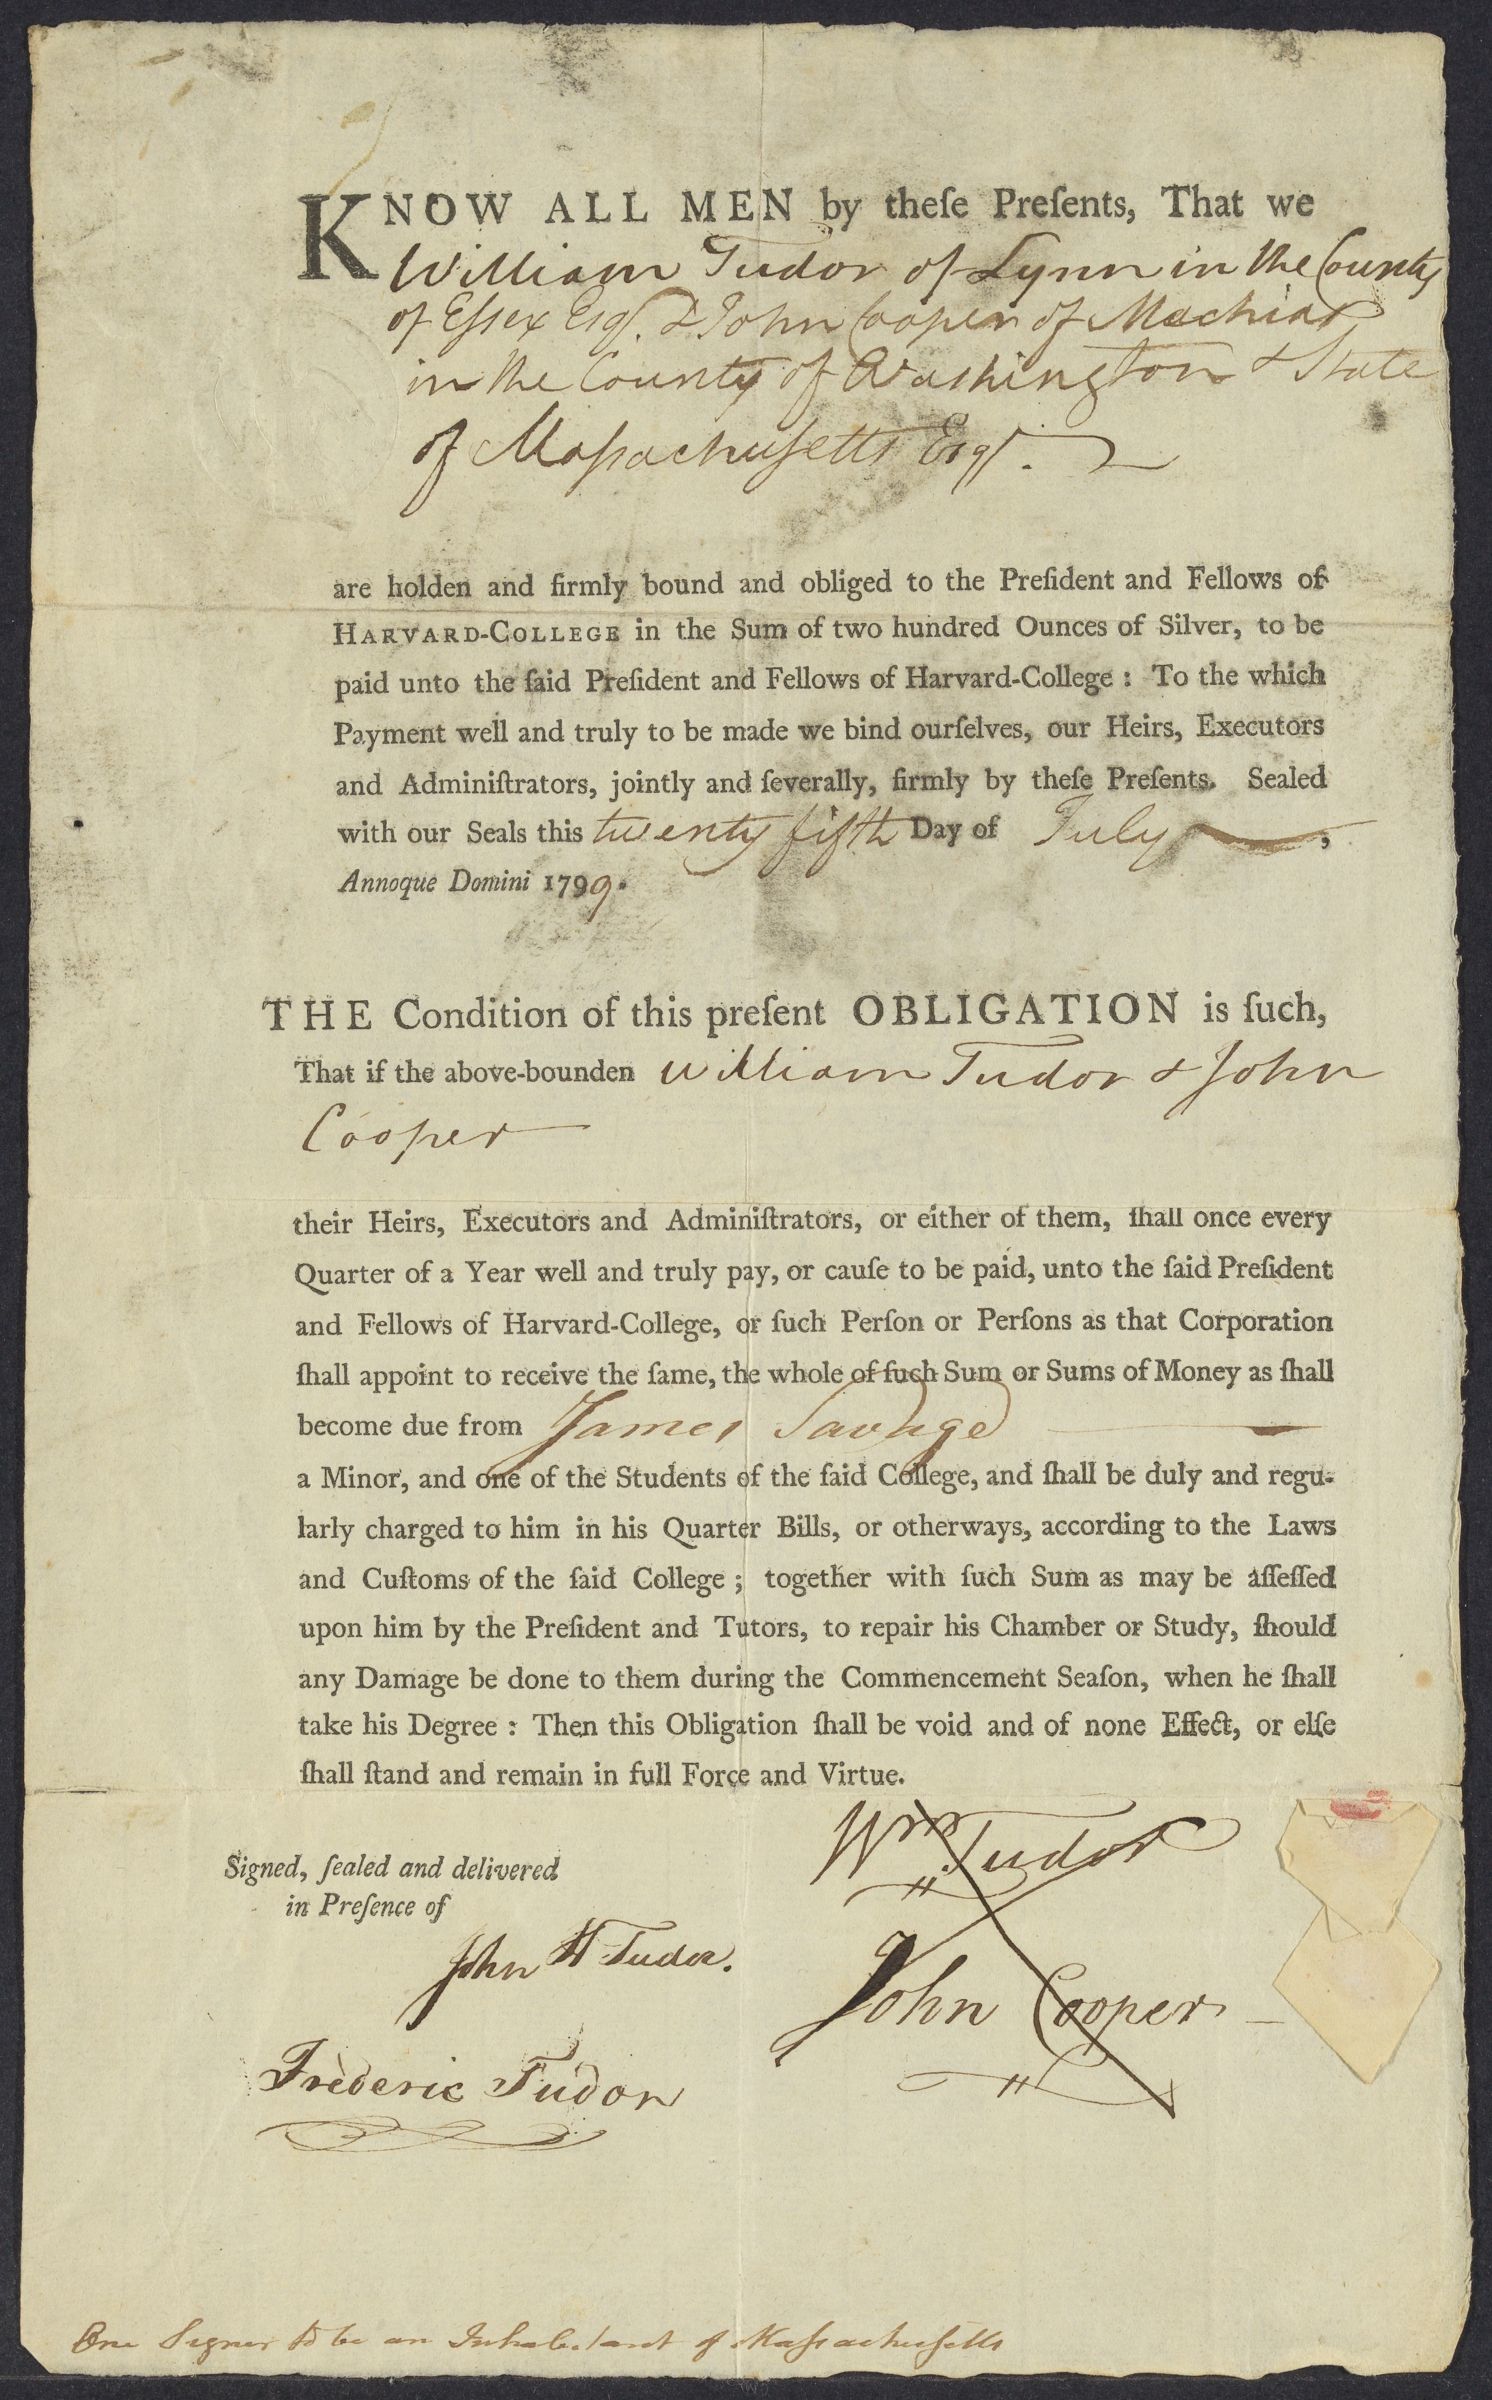 Guarantee of financial support for student James Savage, signed by William Tudor and John Cooper, 1799 July 25